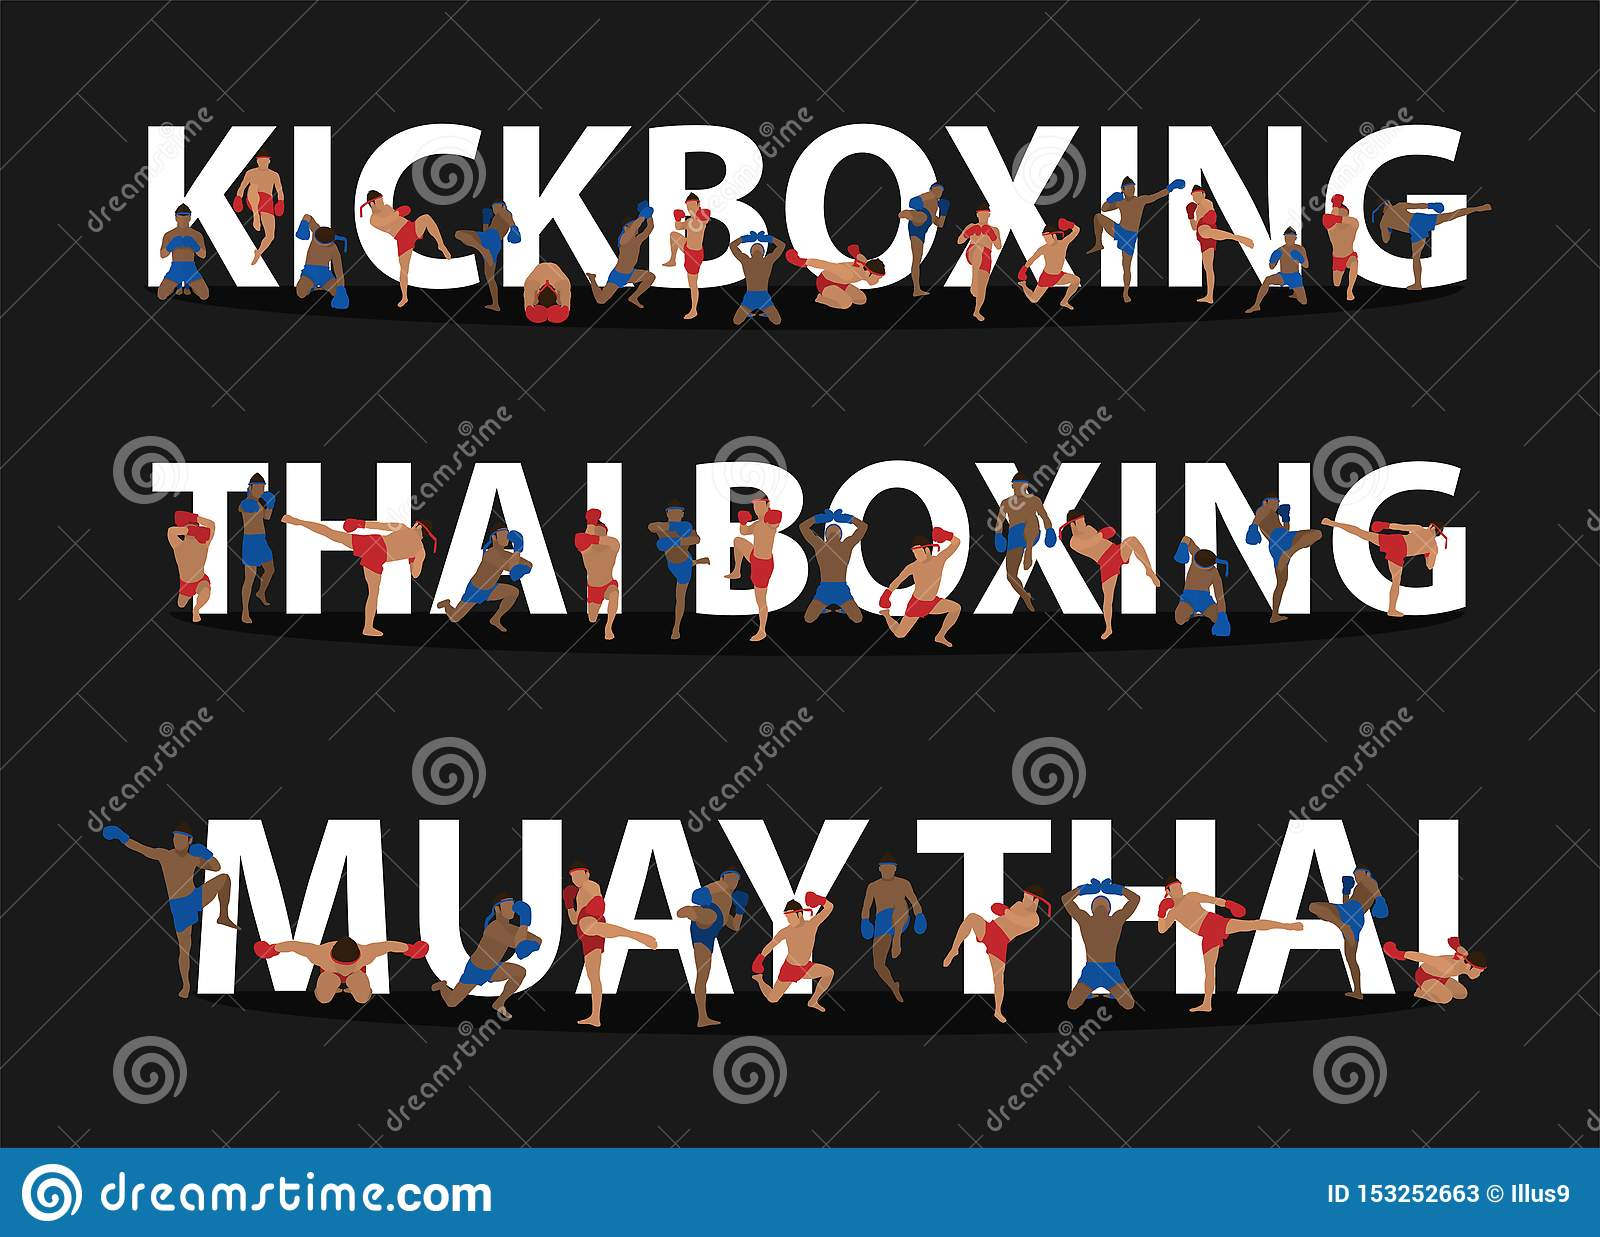 Kickboxing, Thai Boxing, Muay Thai Action On Flat Big Letters Ideas